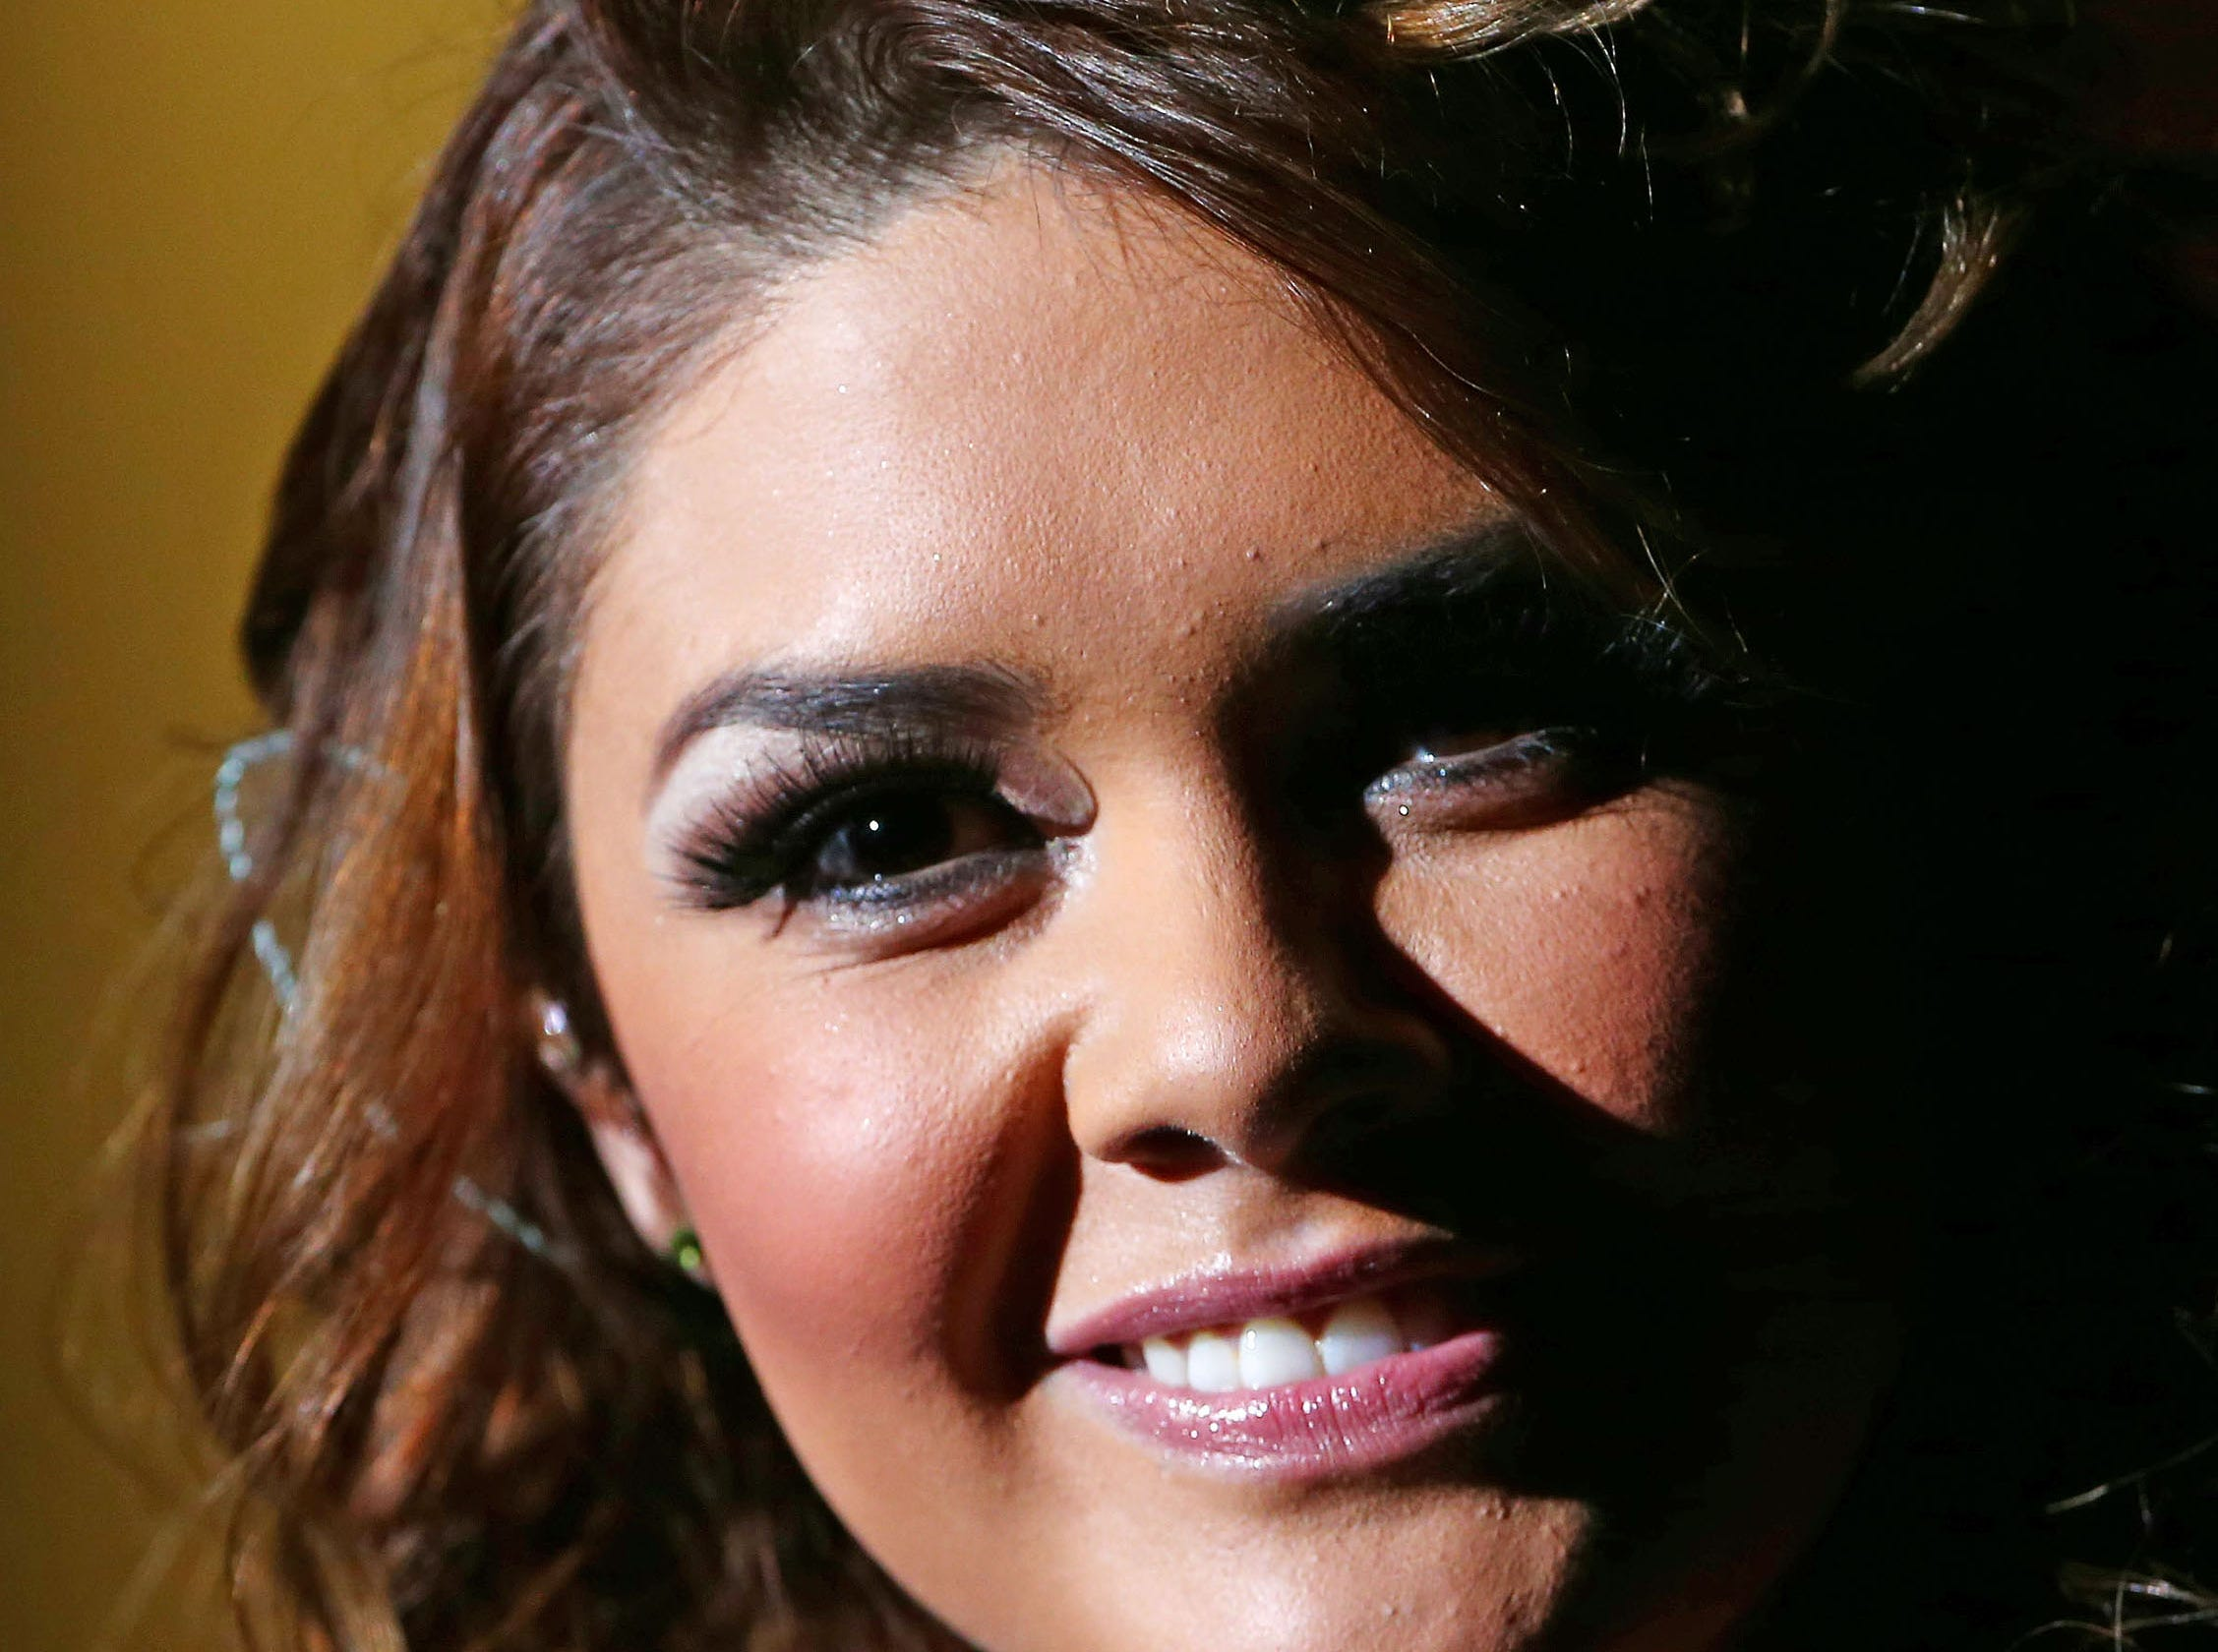 Latin-pop star Yuridia performs  Wednesday, Nov 21, 2012 at Comerica Theatre in Phoenix.